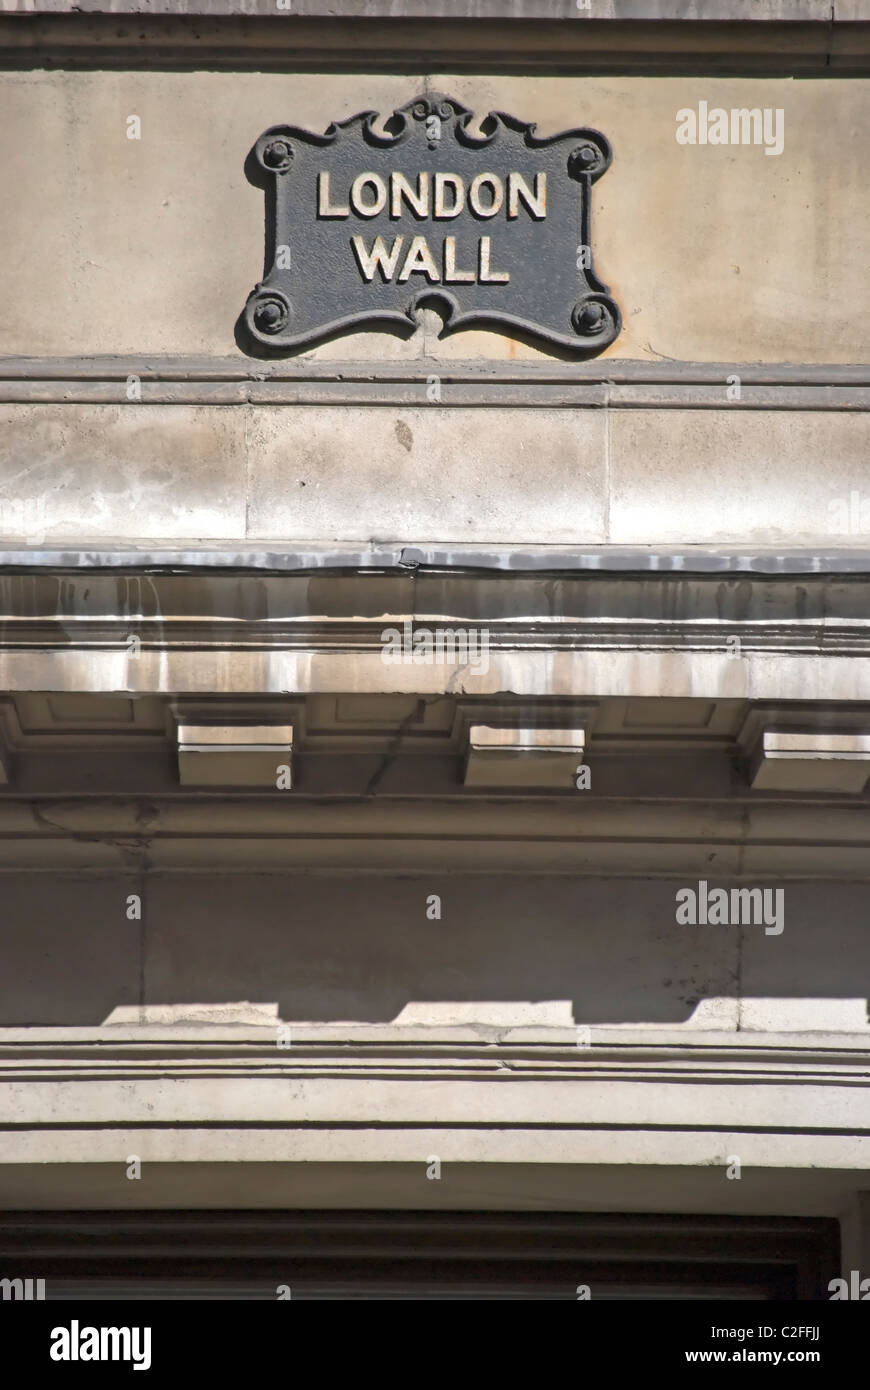 vintage street name sign for london wall, in the city of london, england - Stock Image